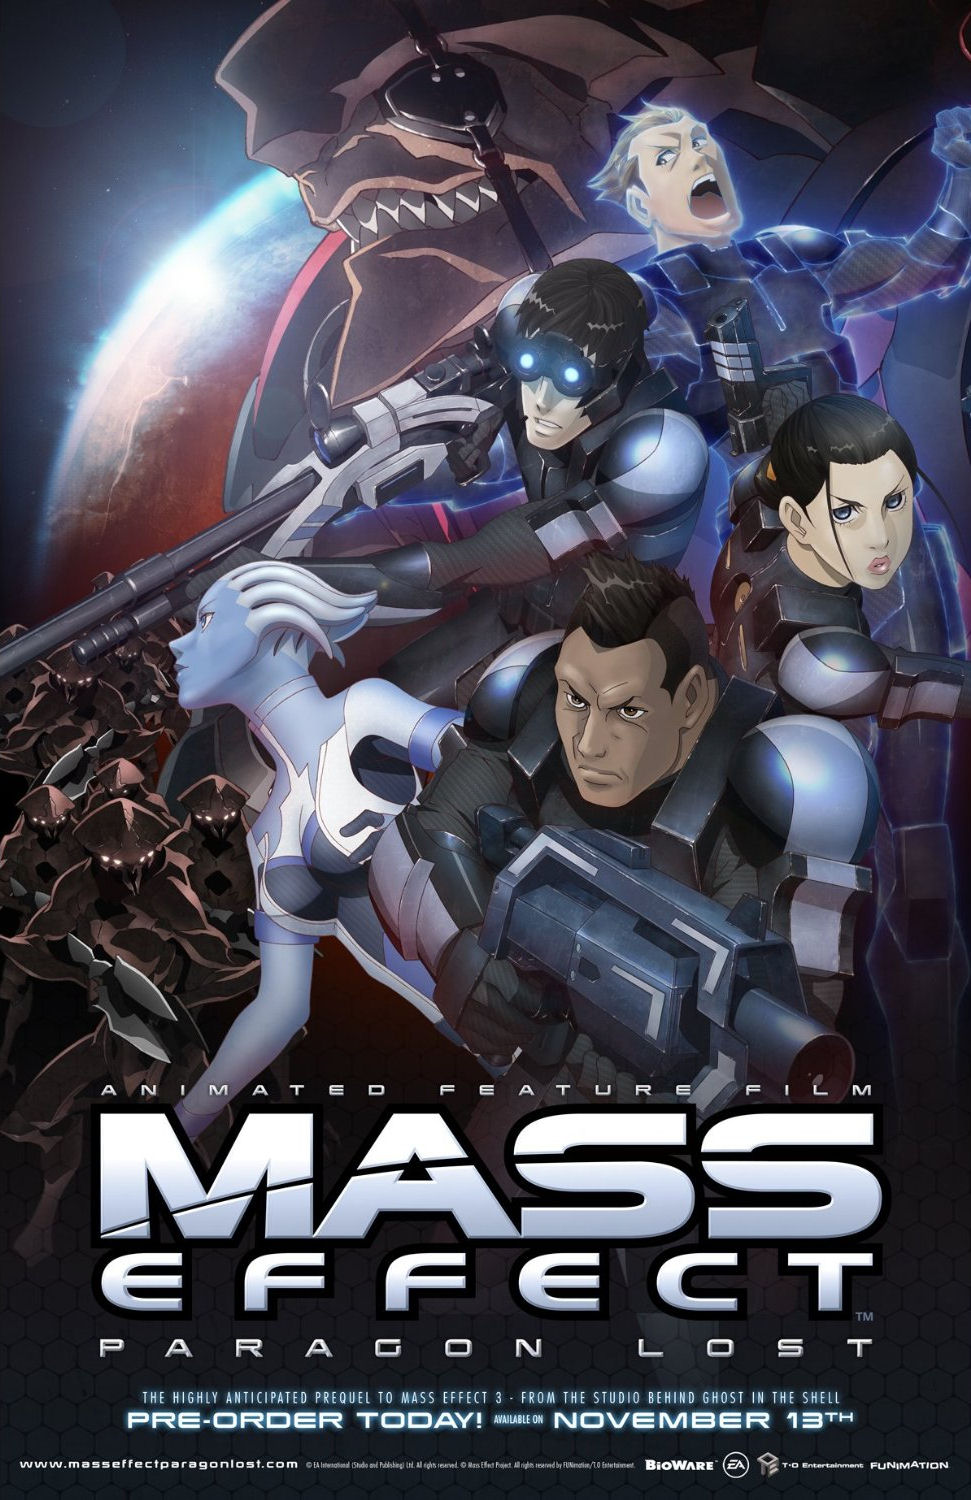 Mass Effect Paragon Lost Video 2012 Imdb